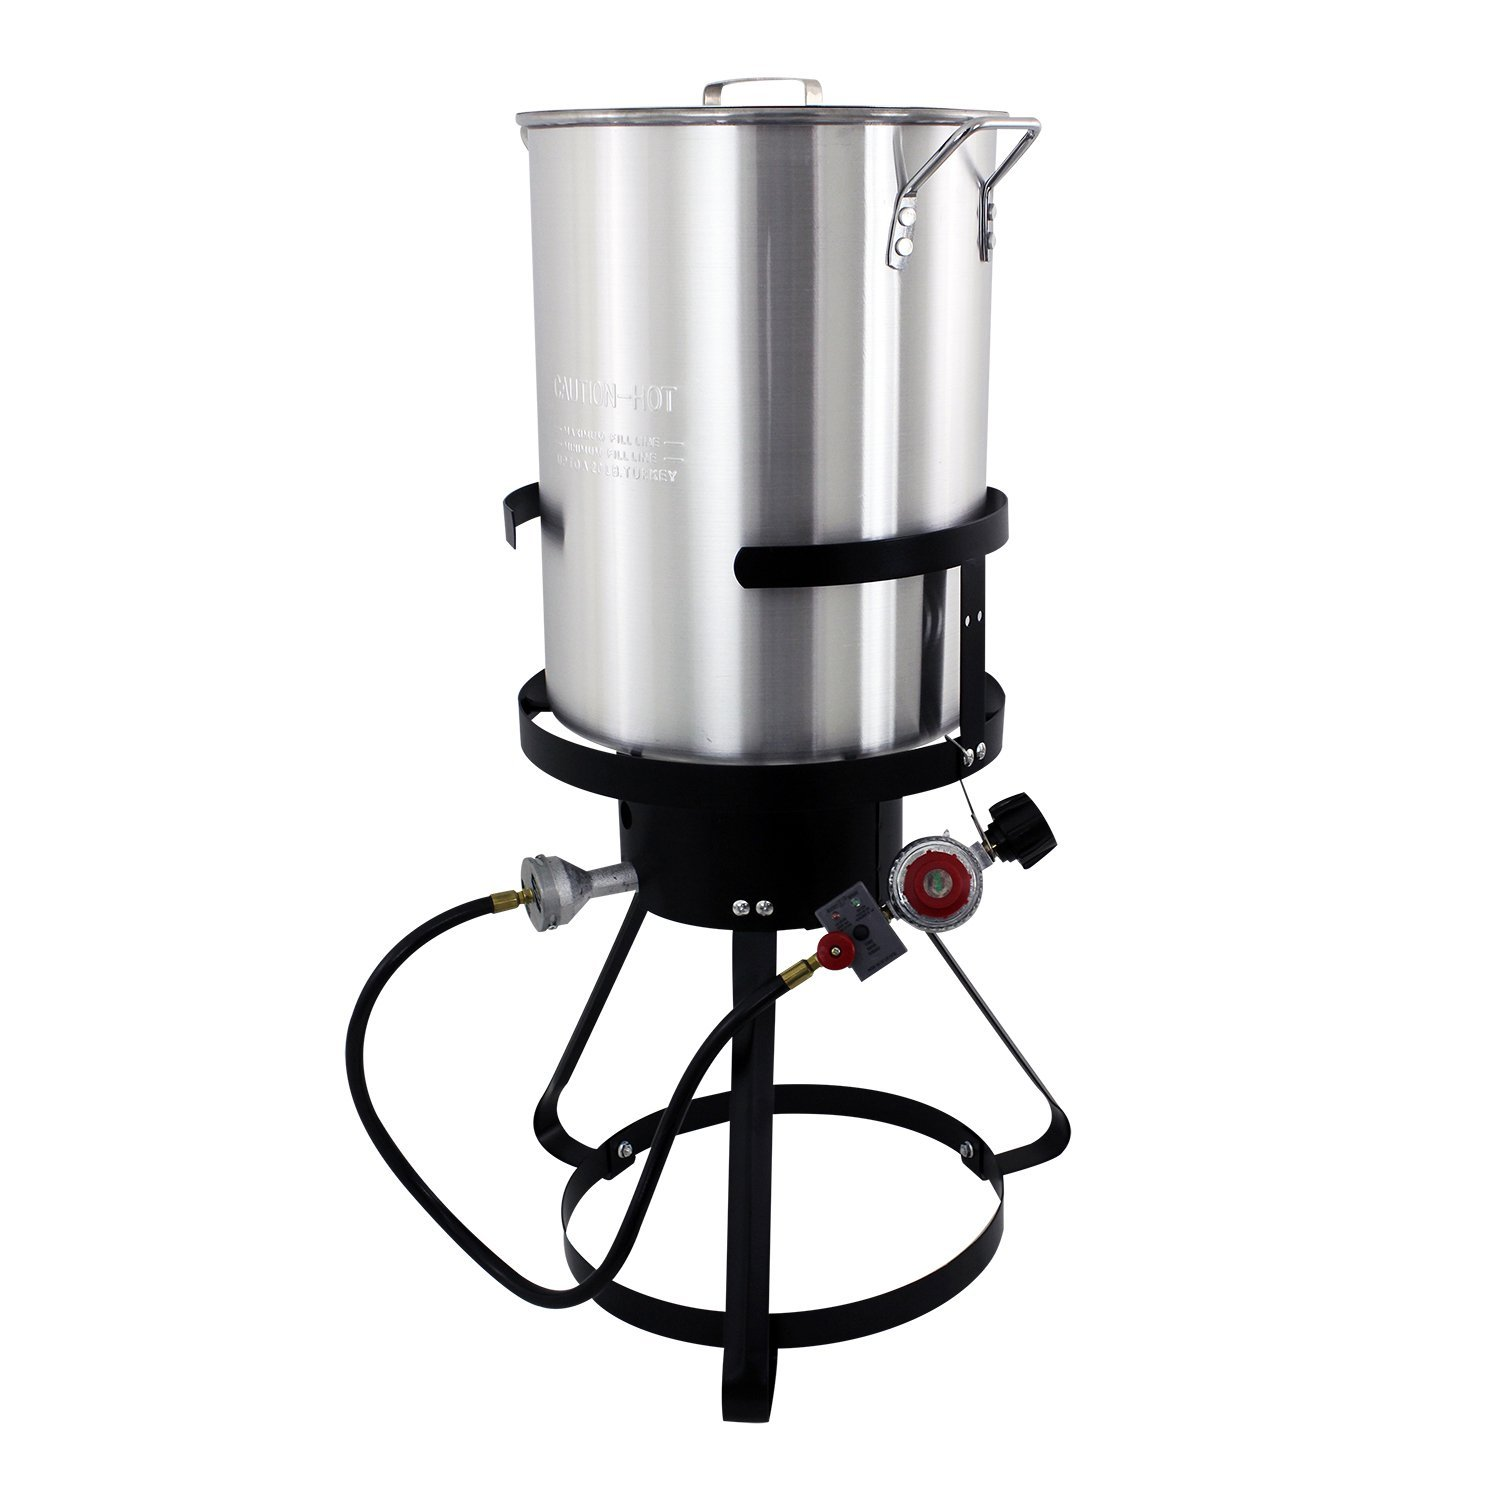 Chard TFP30A Aluminum Turkey Fryer Pack, 30 Quart by Chard